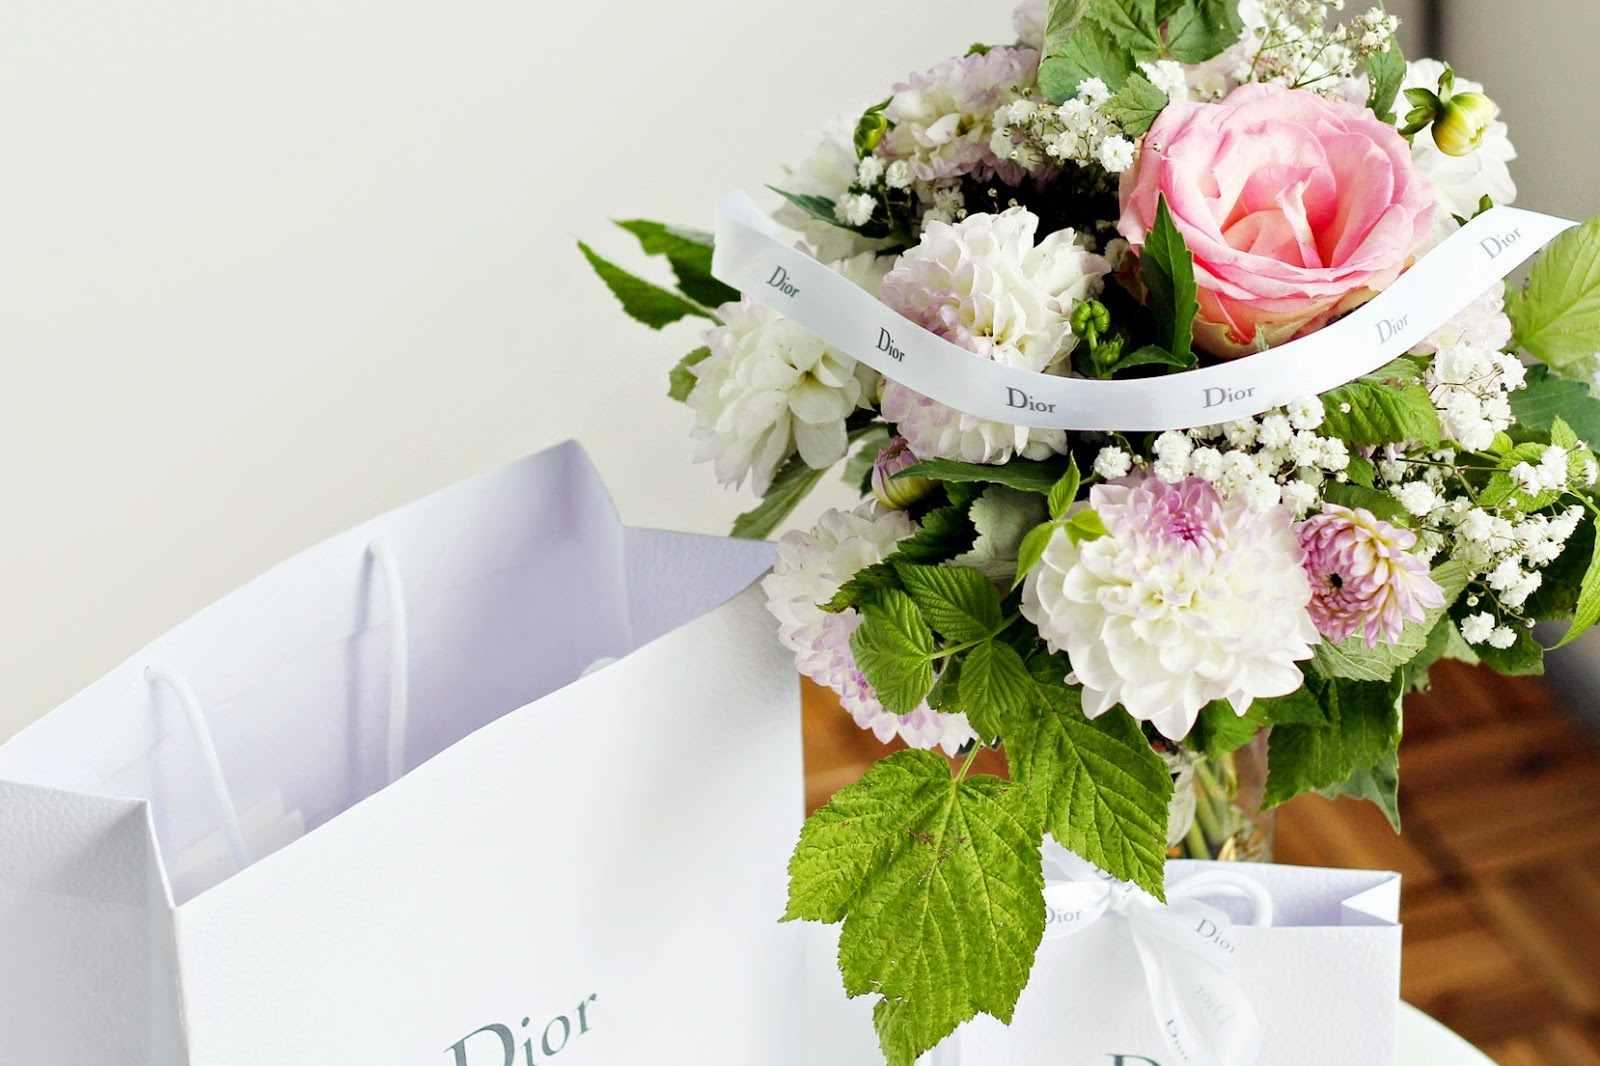 From Dior with love